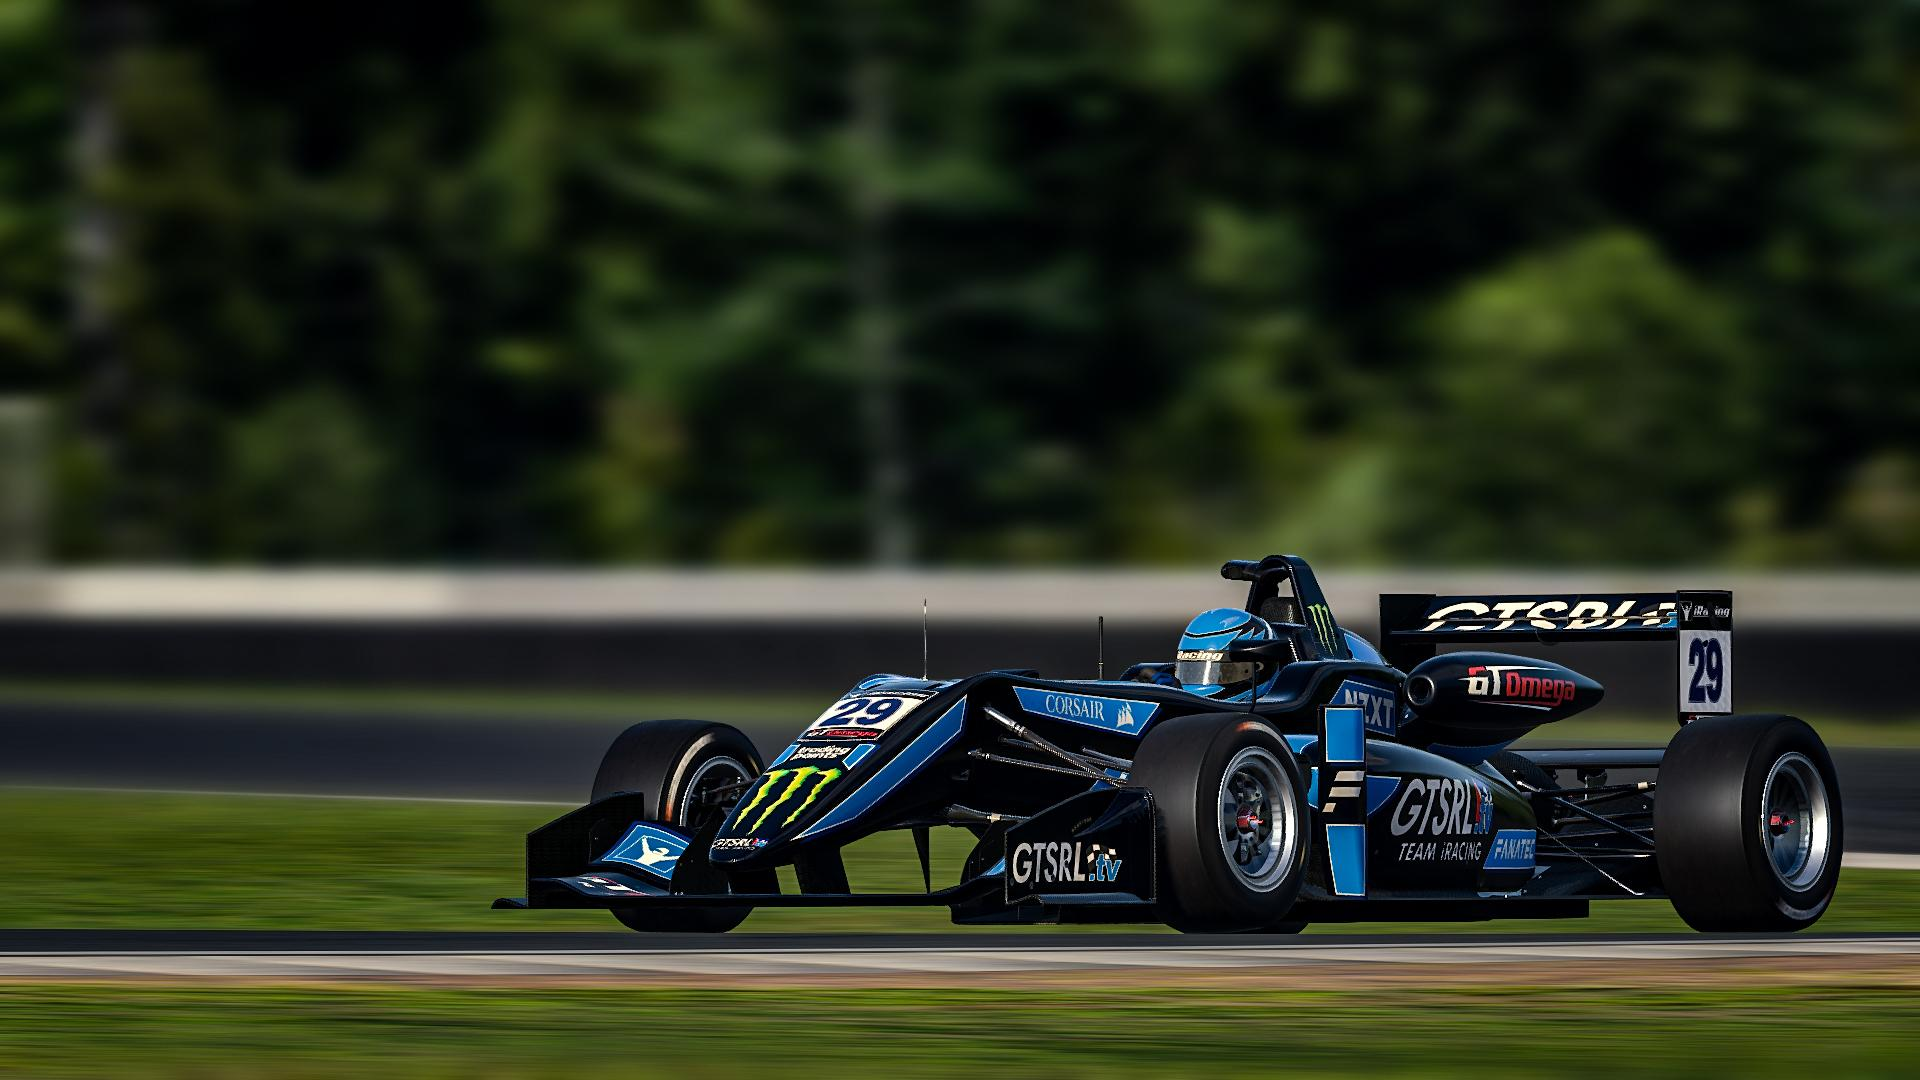 Preview of GTSRL Dallara F3 by Vincent W.